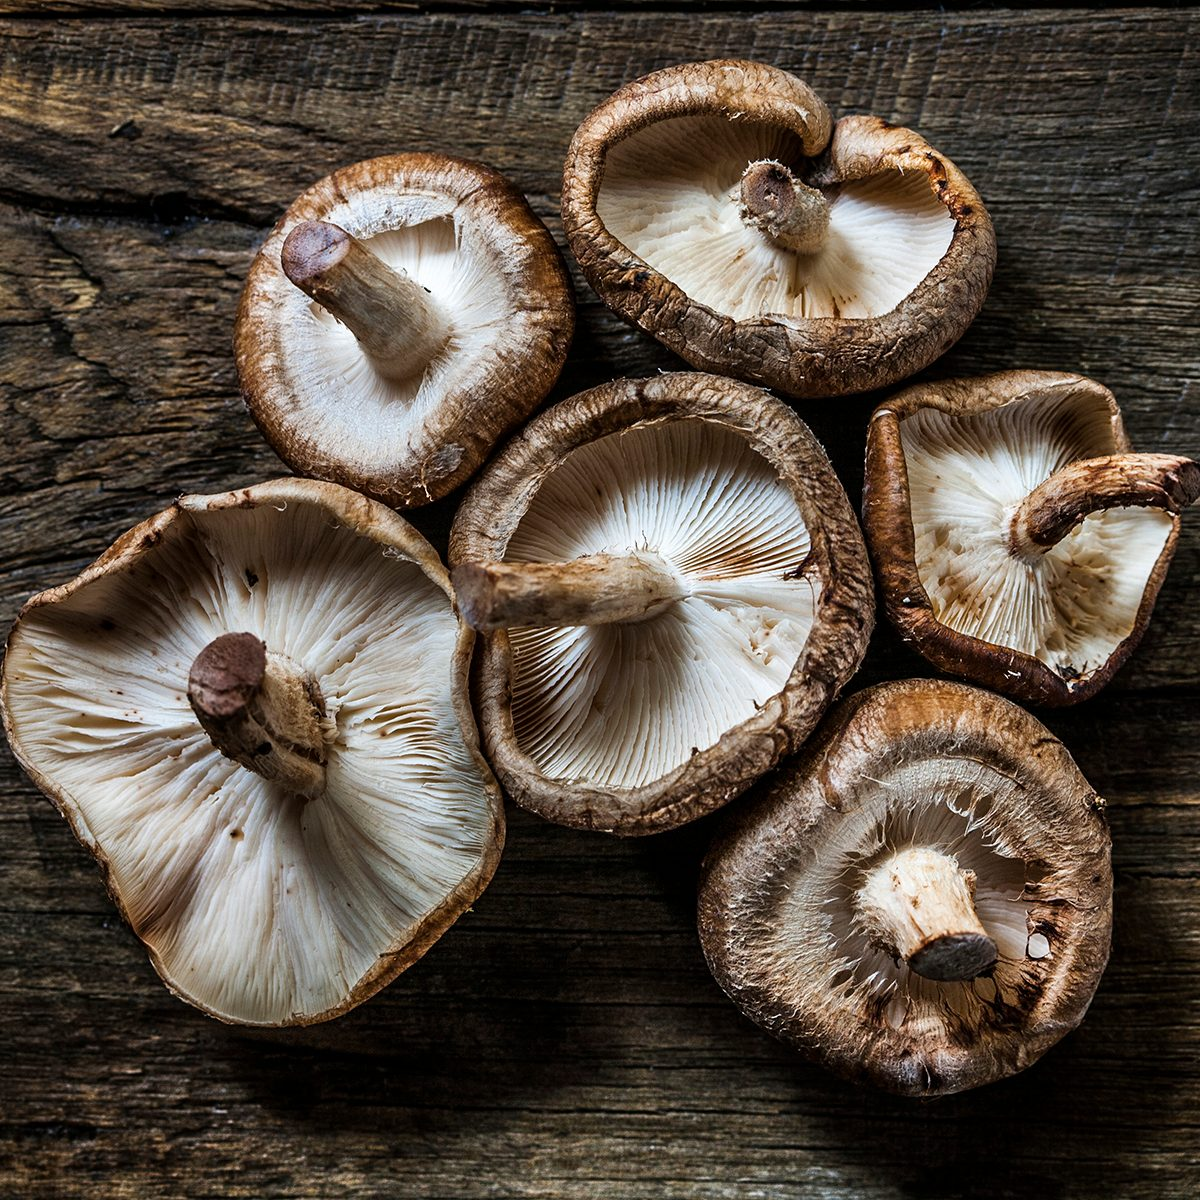 Beautiful Shiitake mushrooms, organically arranged on a rustic wooden background.